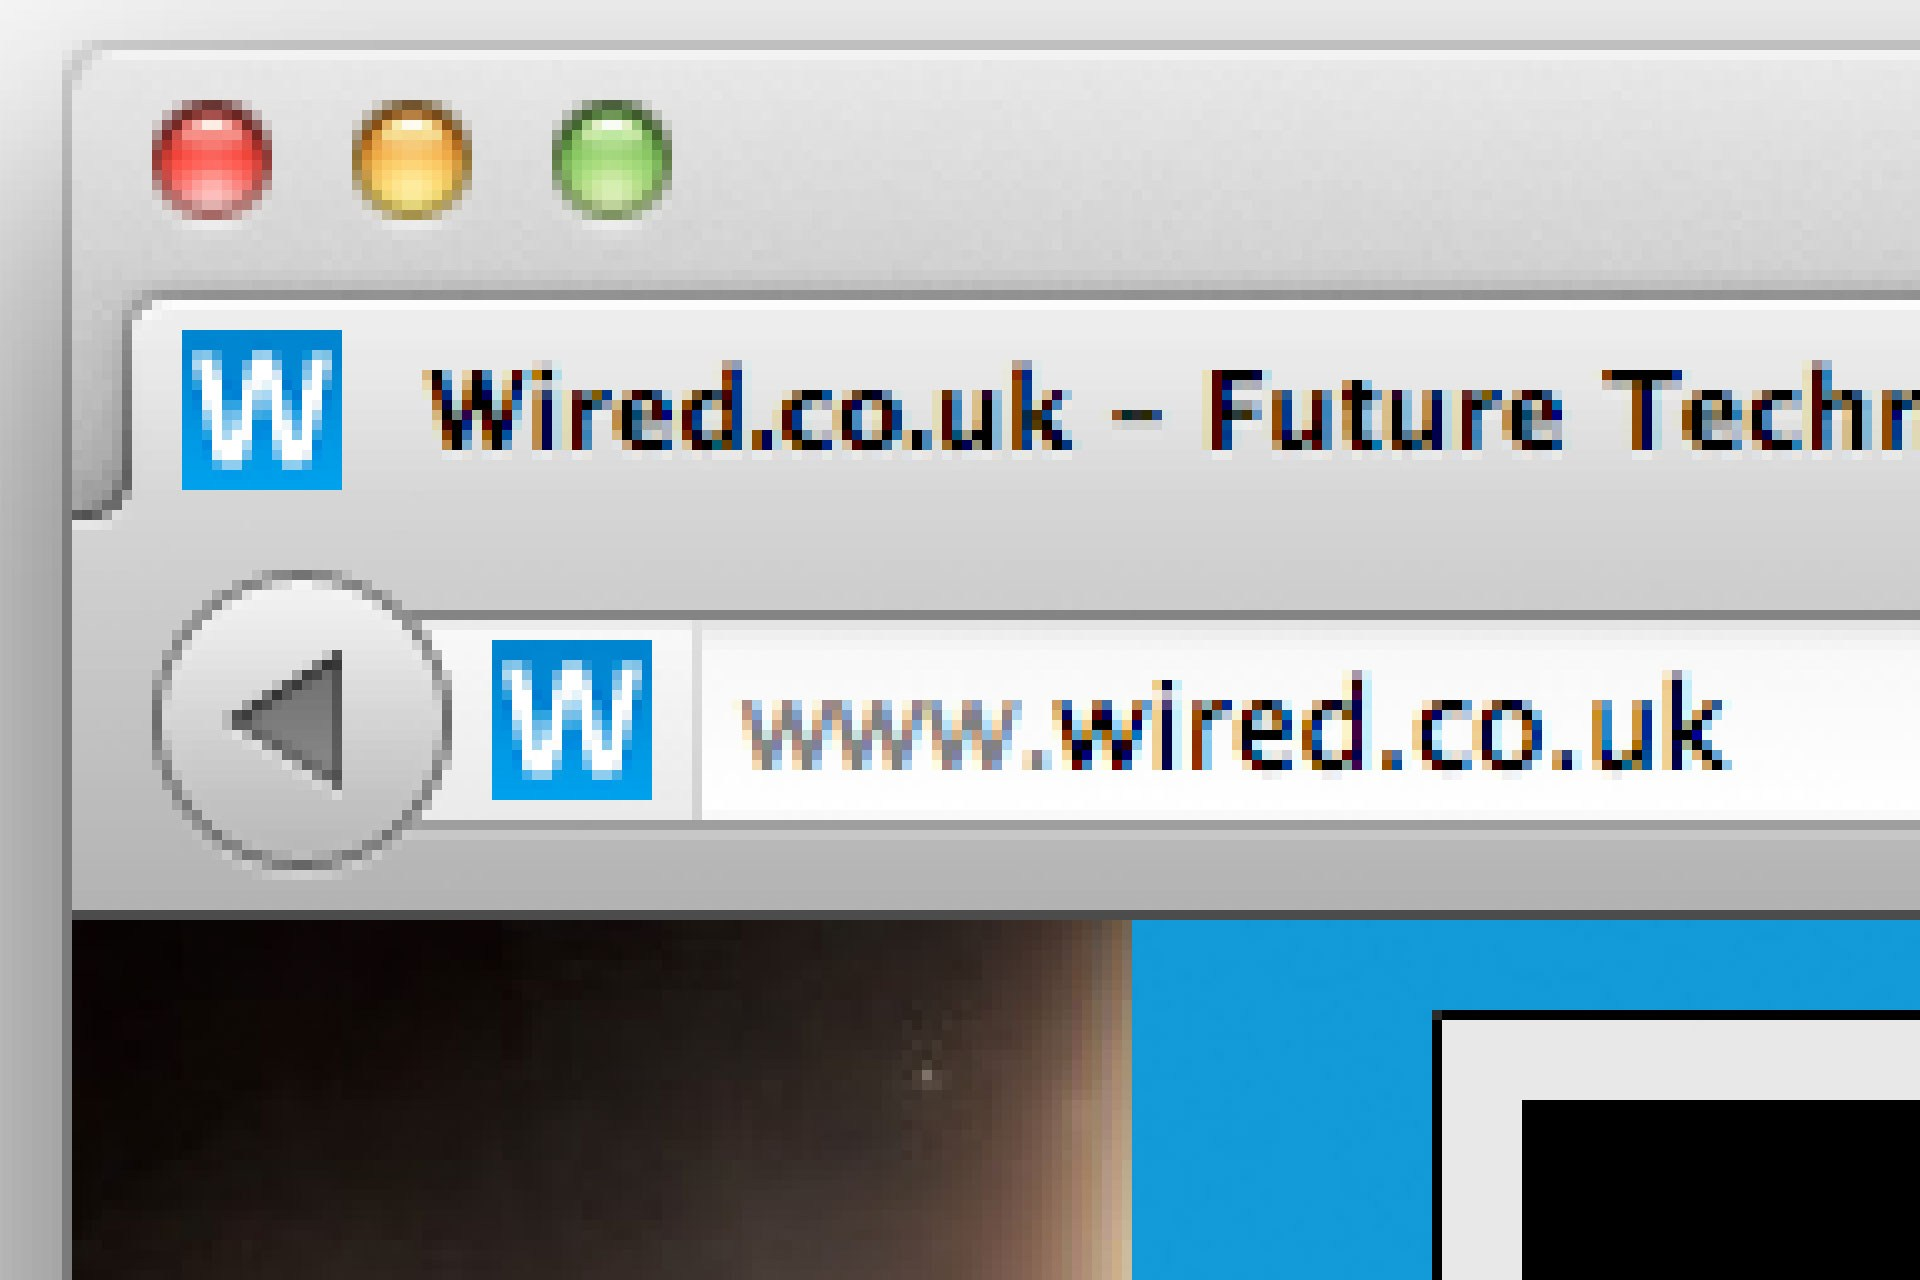 Favicon with UltraIT